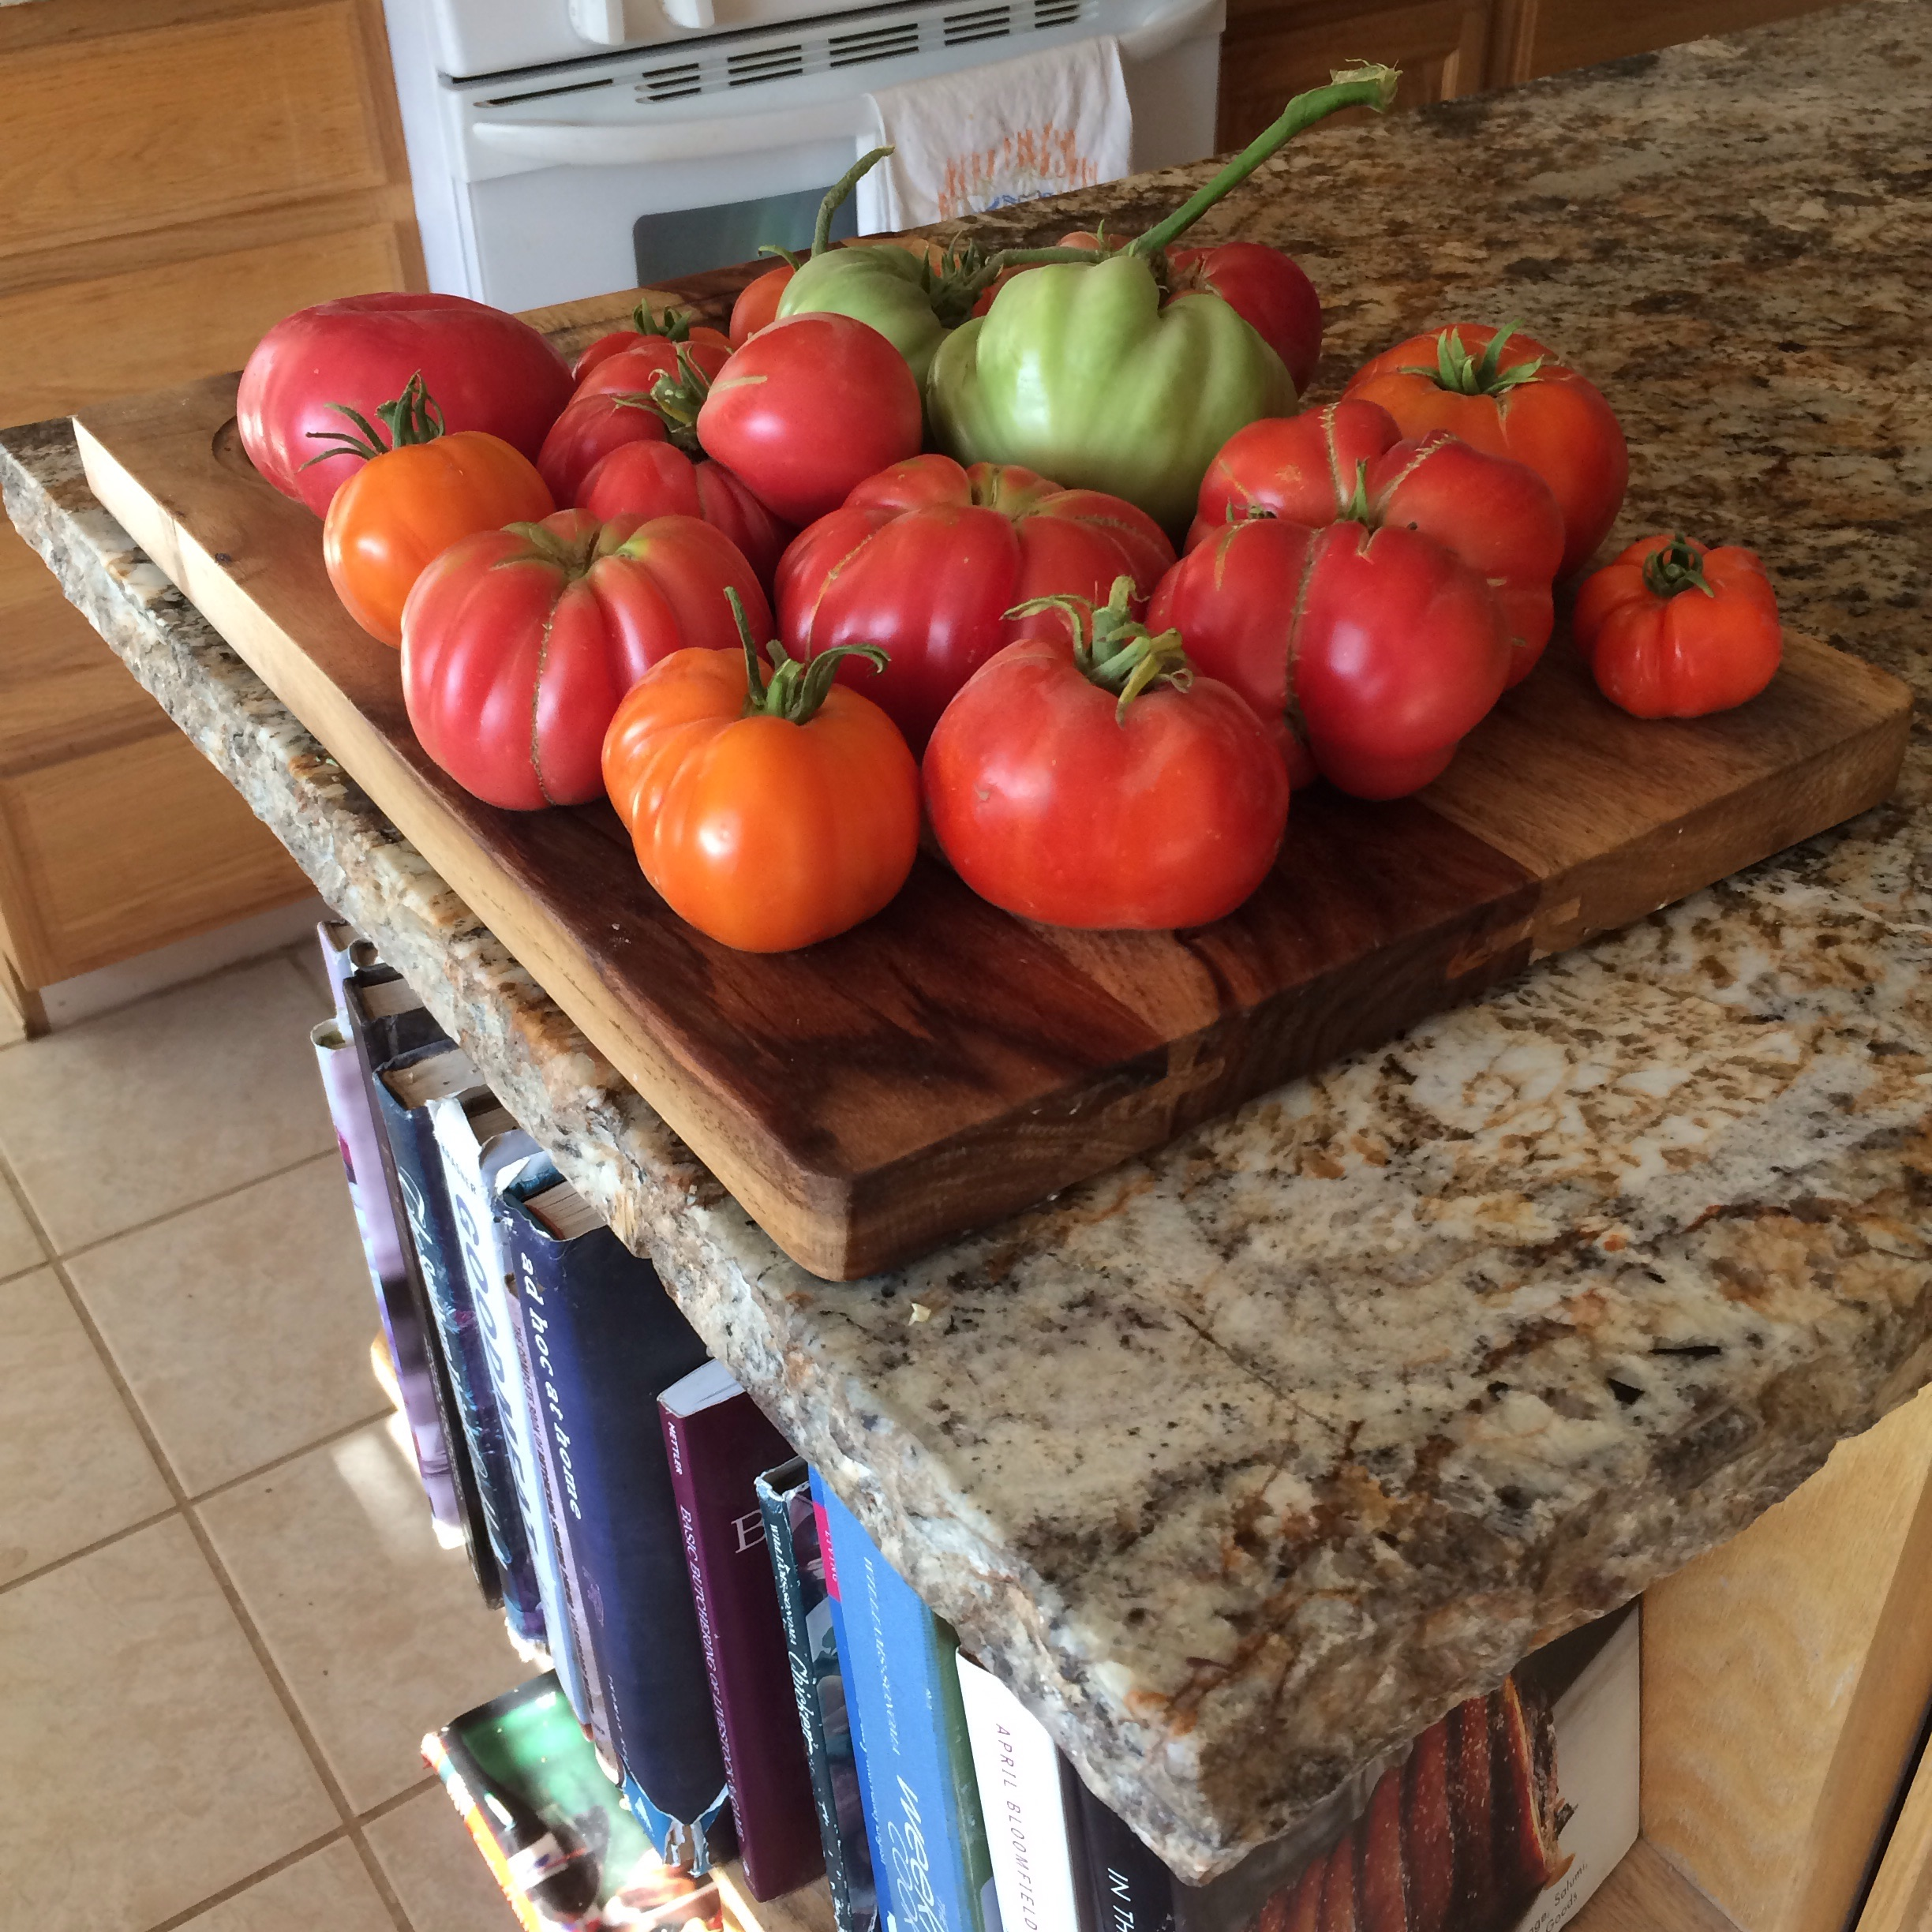 We are getting more and more heirloom tomatoes each day